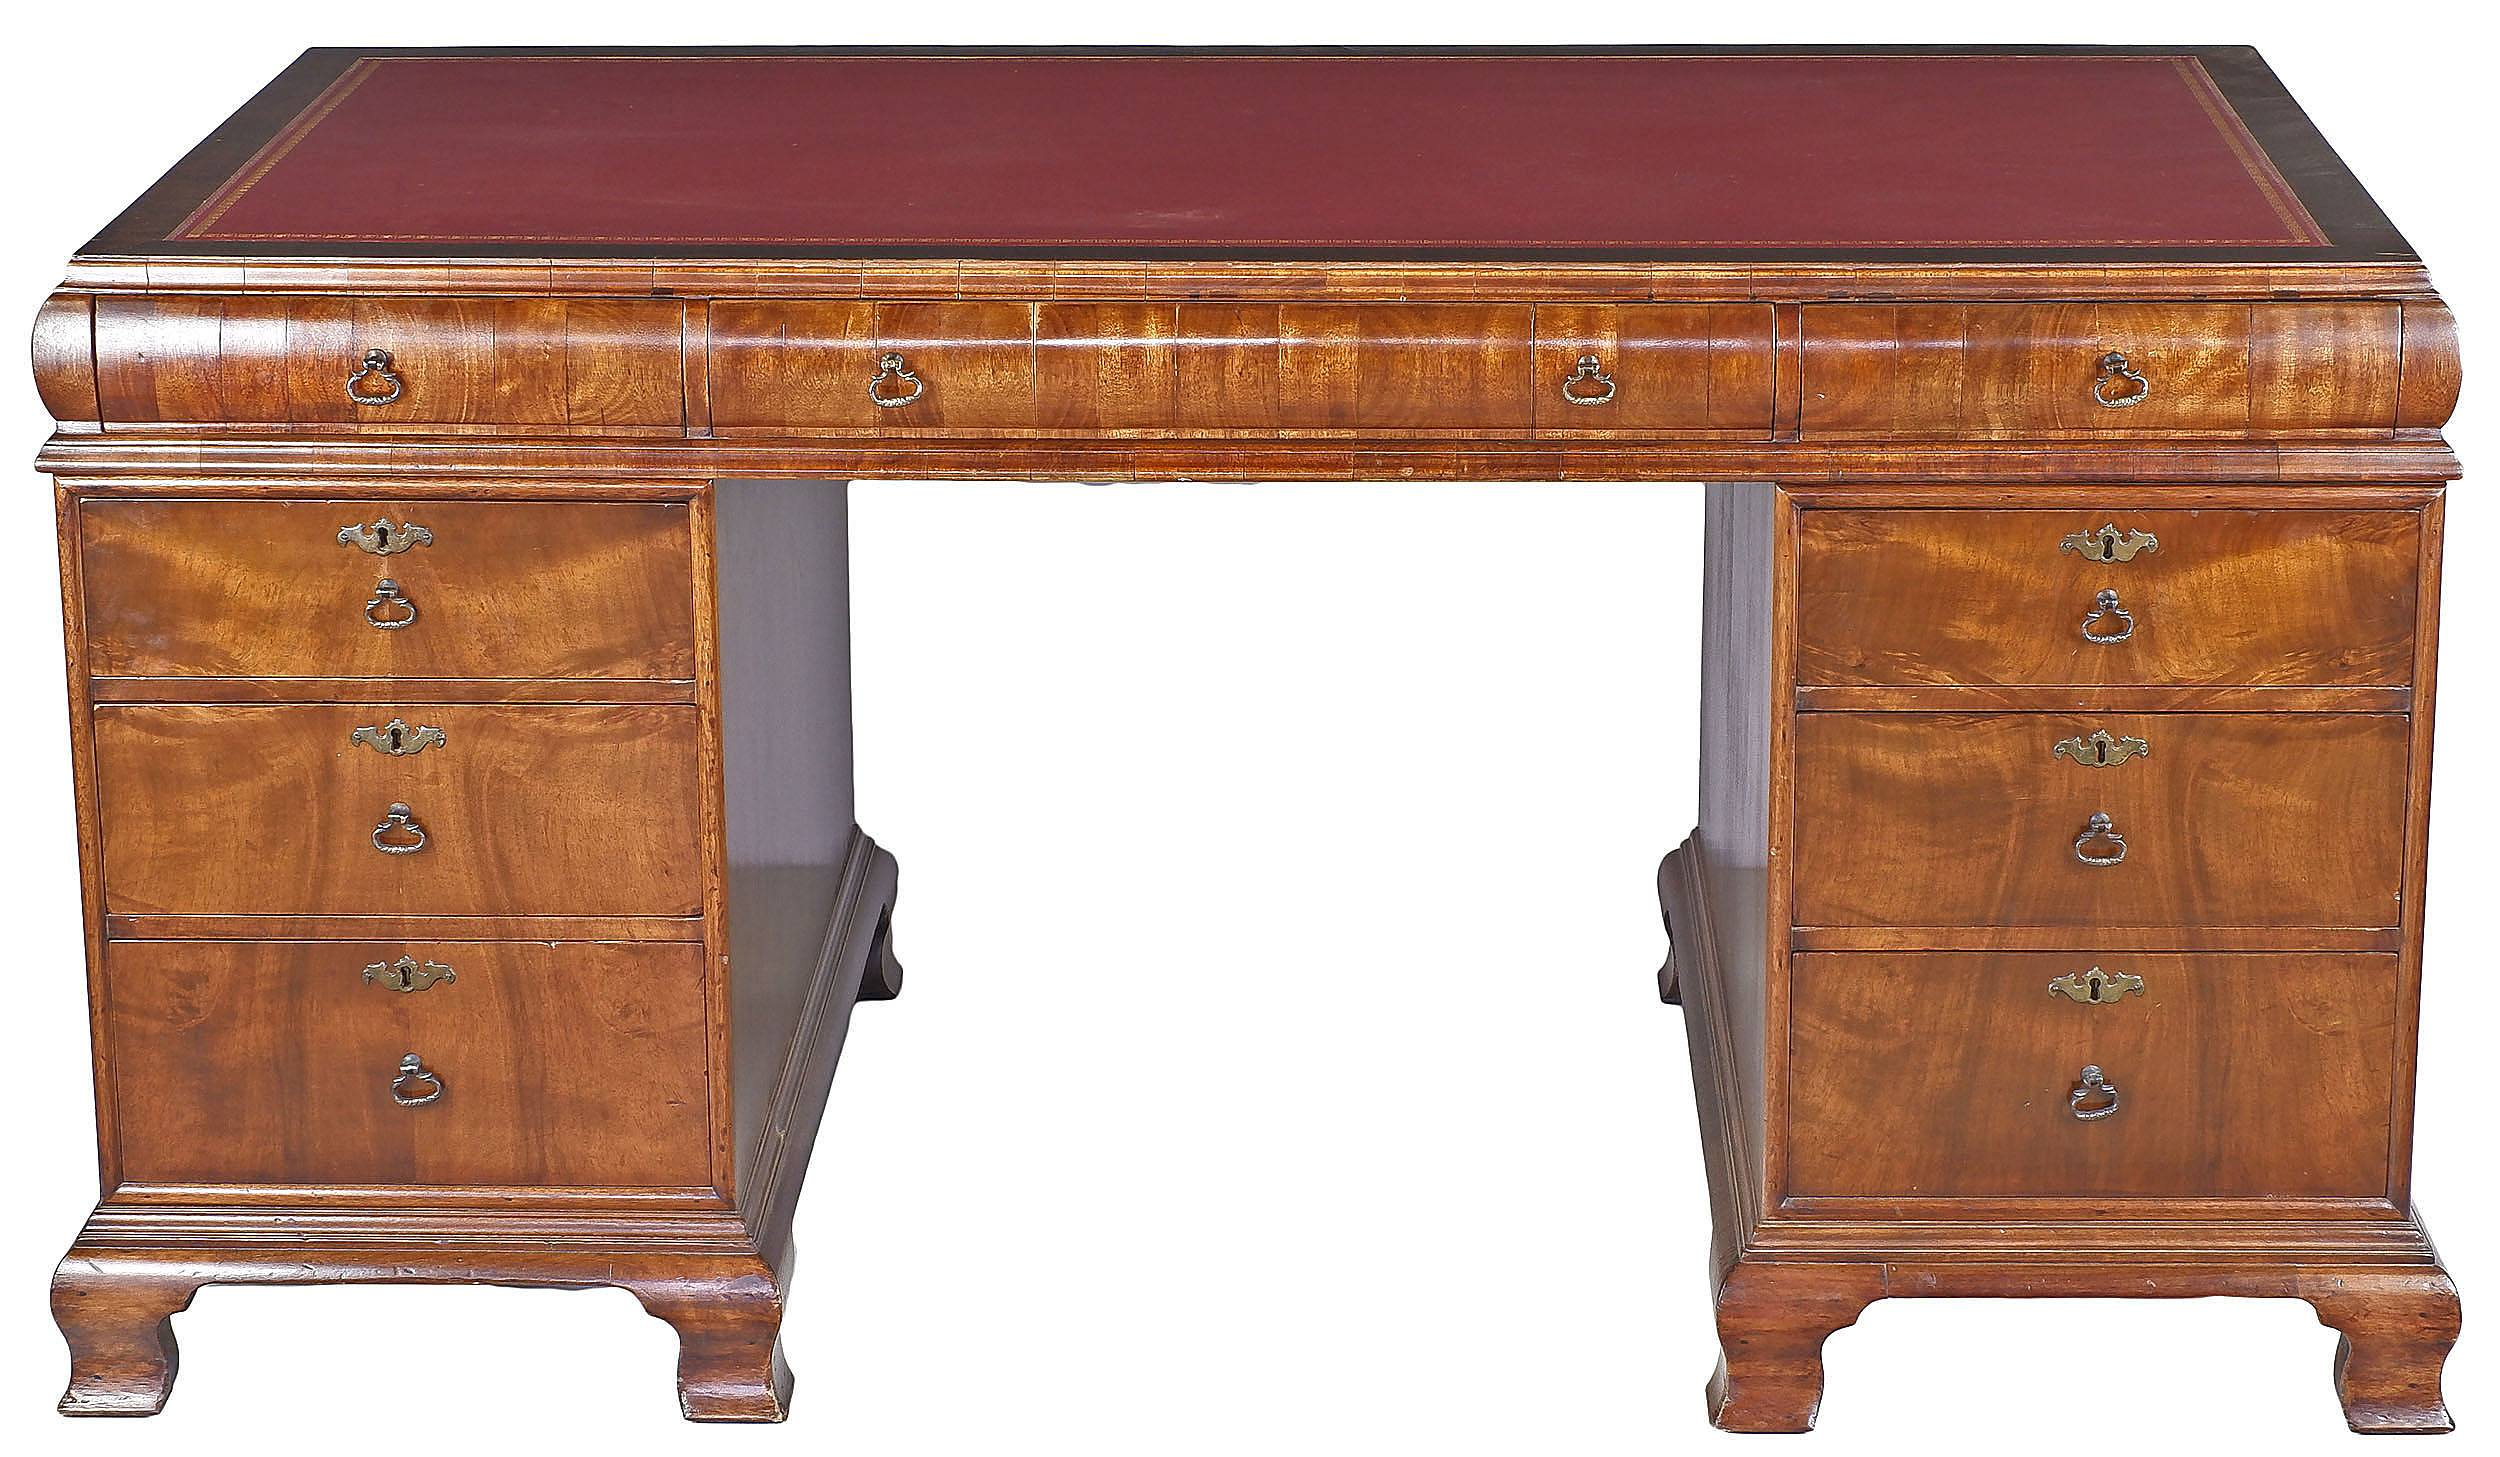 'Queensland Maple and Qld Walnut Pedestal Desk Made by the Infamous Francis de Groot Sydney Circa 1930'